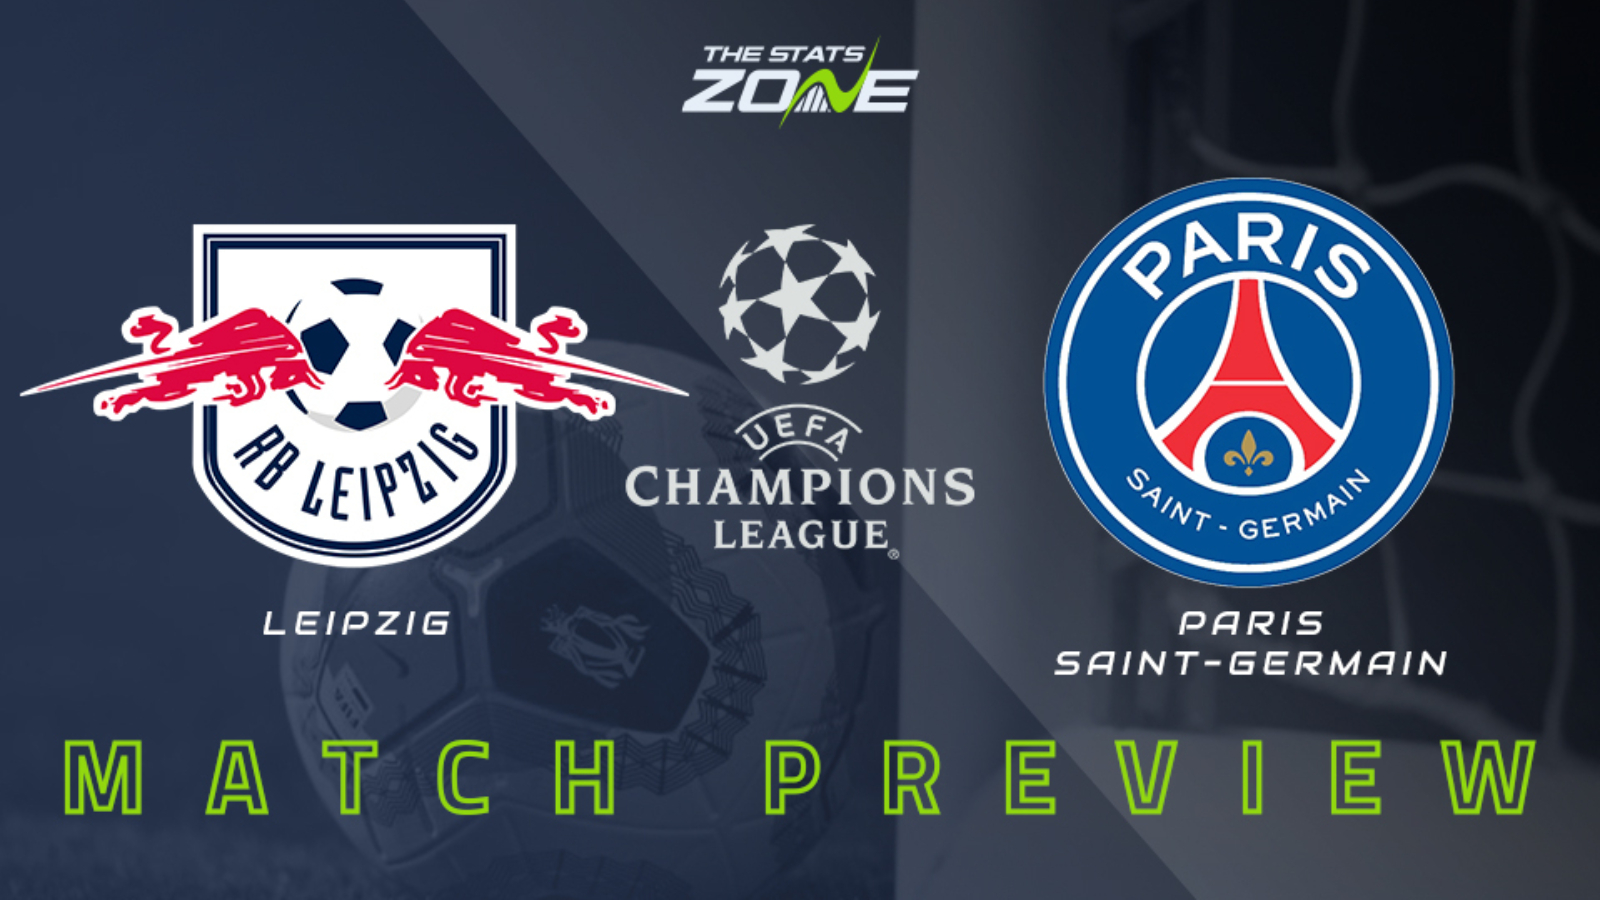 2019 20 Uefa Champions League Rb Leipzig Vs Psg Preview Prediction The Stats Zone